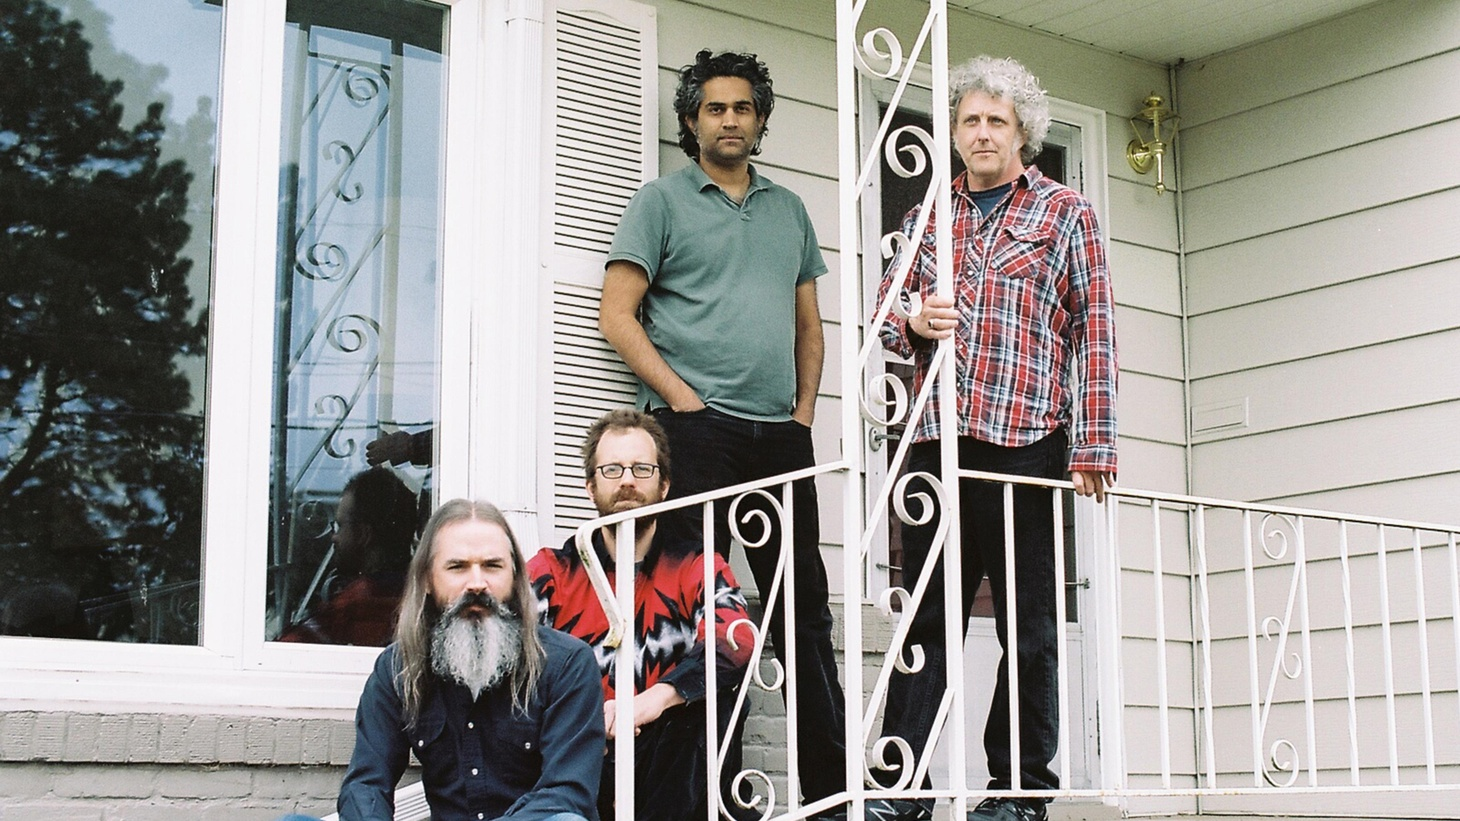 Psychedelic rock band Wooden Shjips give a pretty clear sense of their philosophy from just their name...